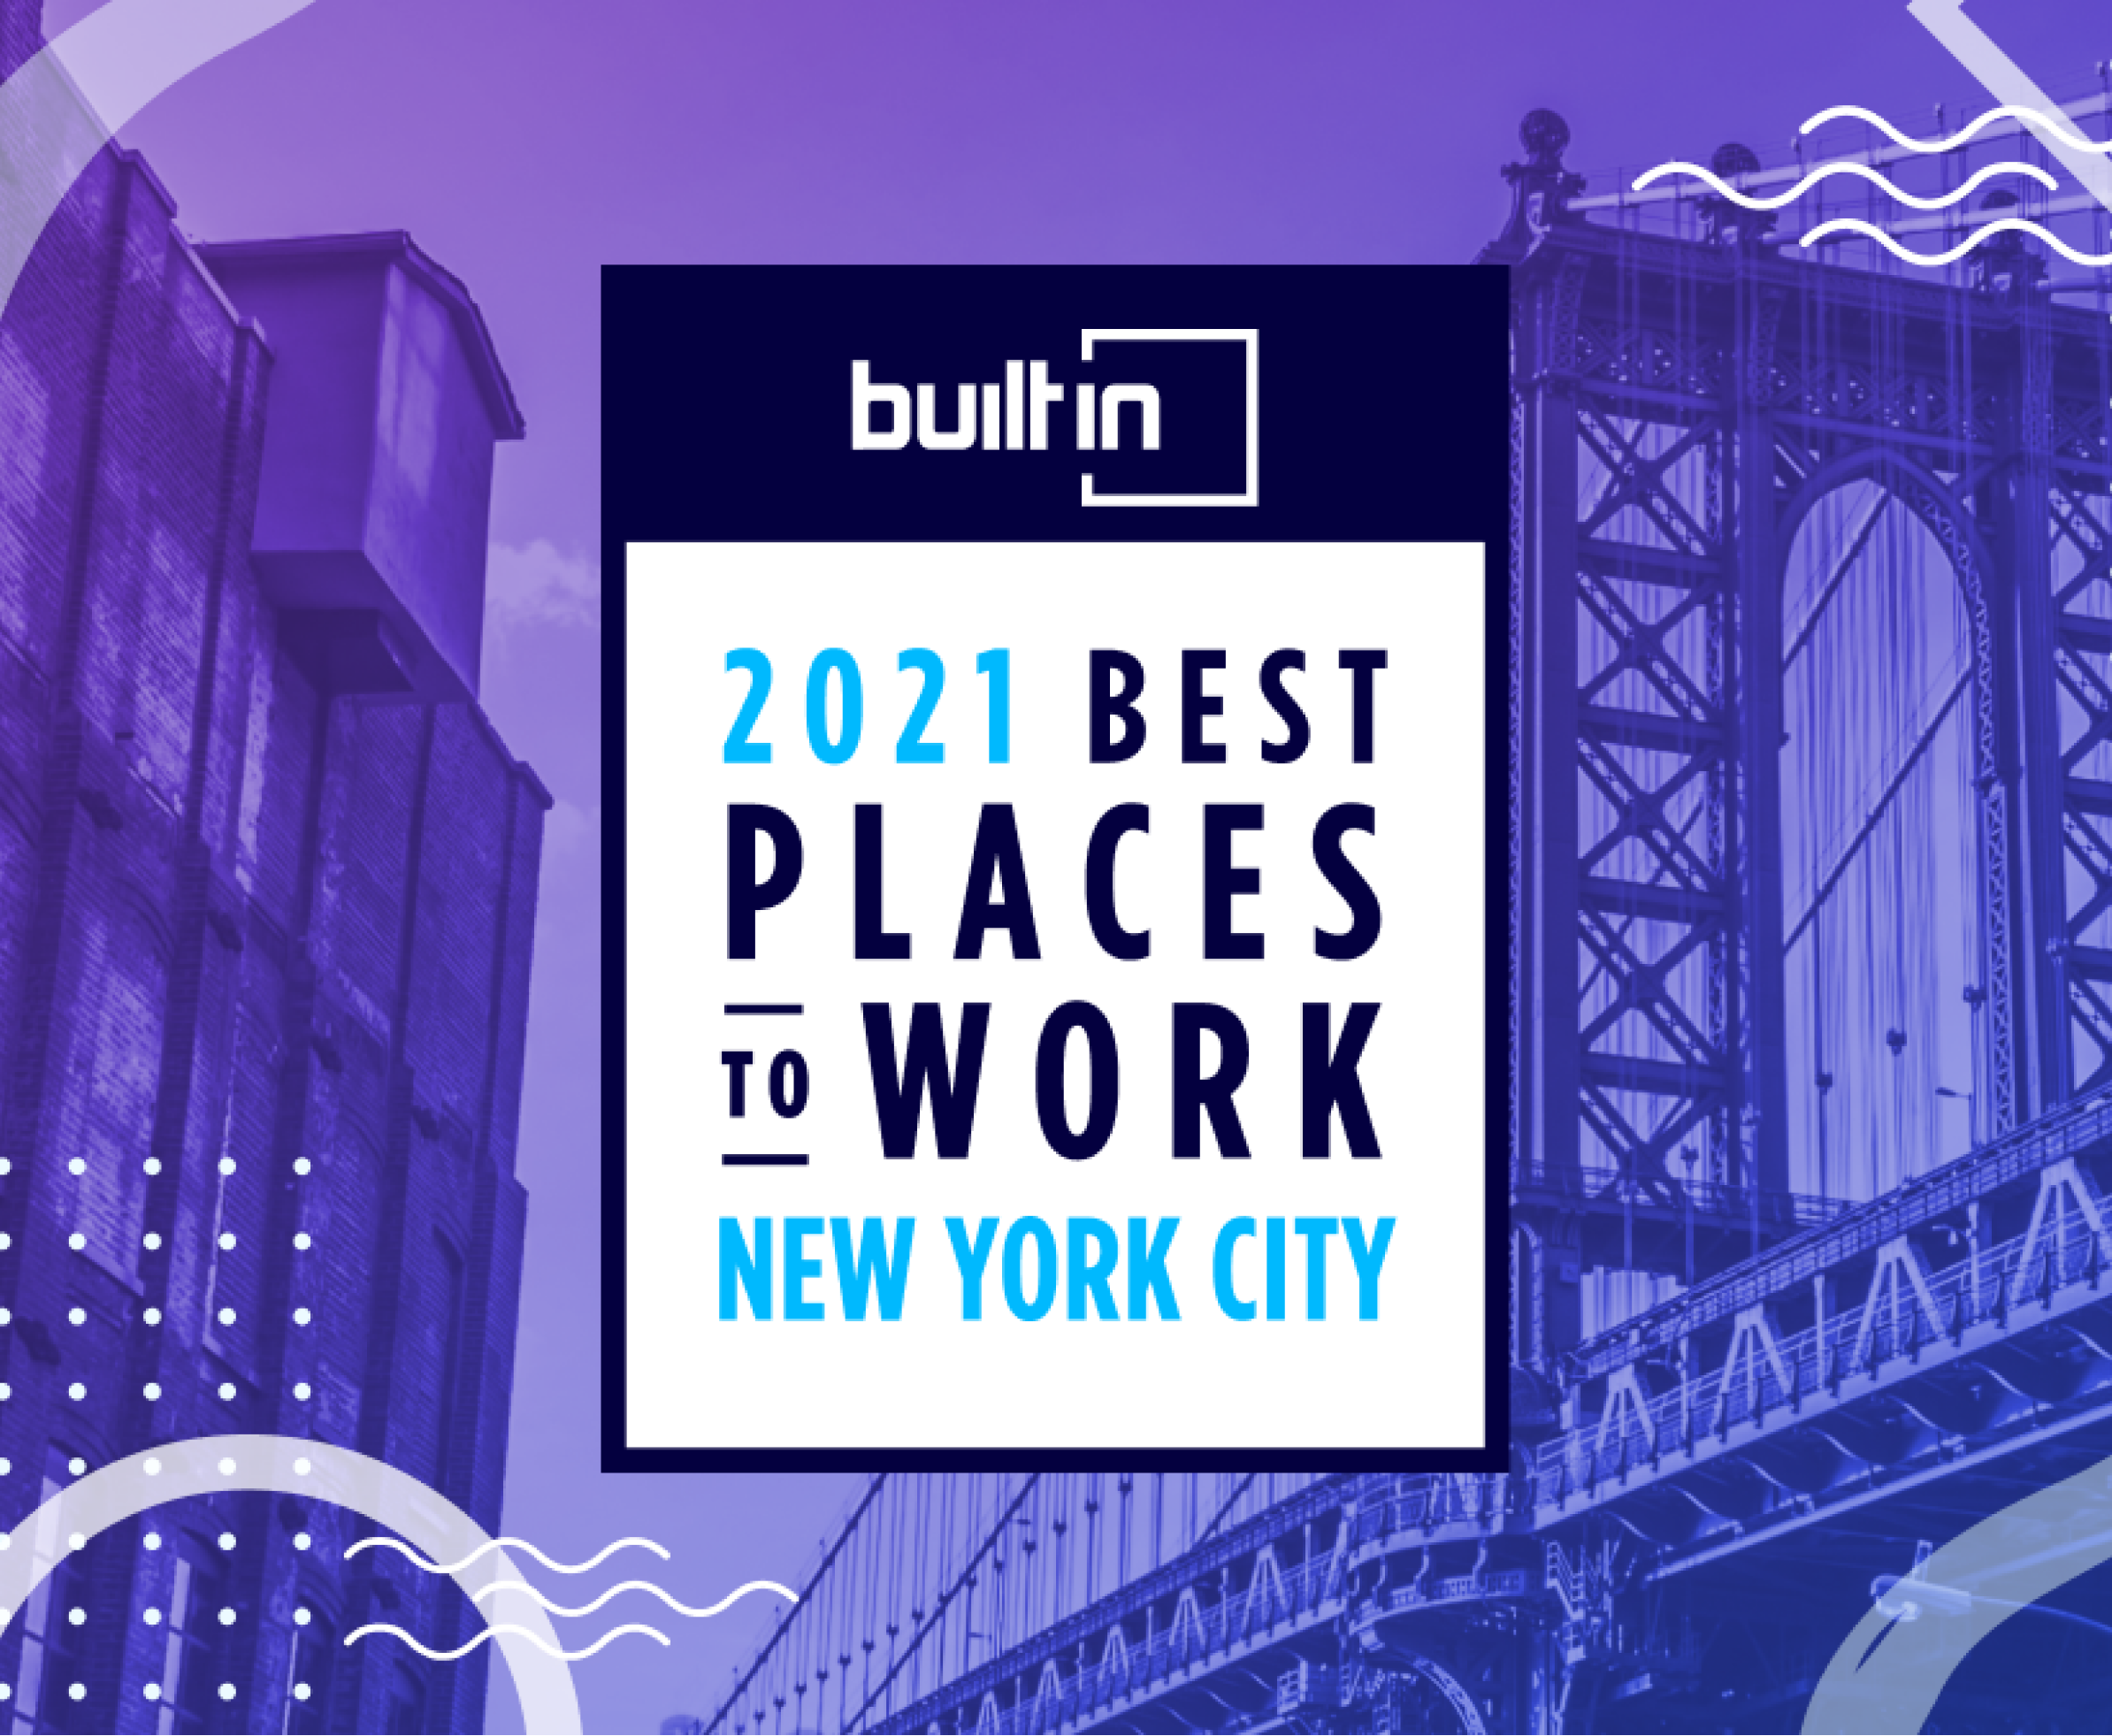 Best places to work builtin